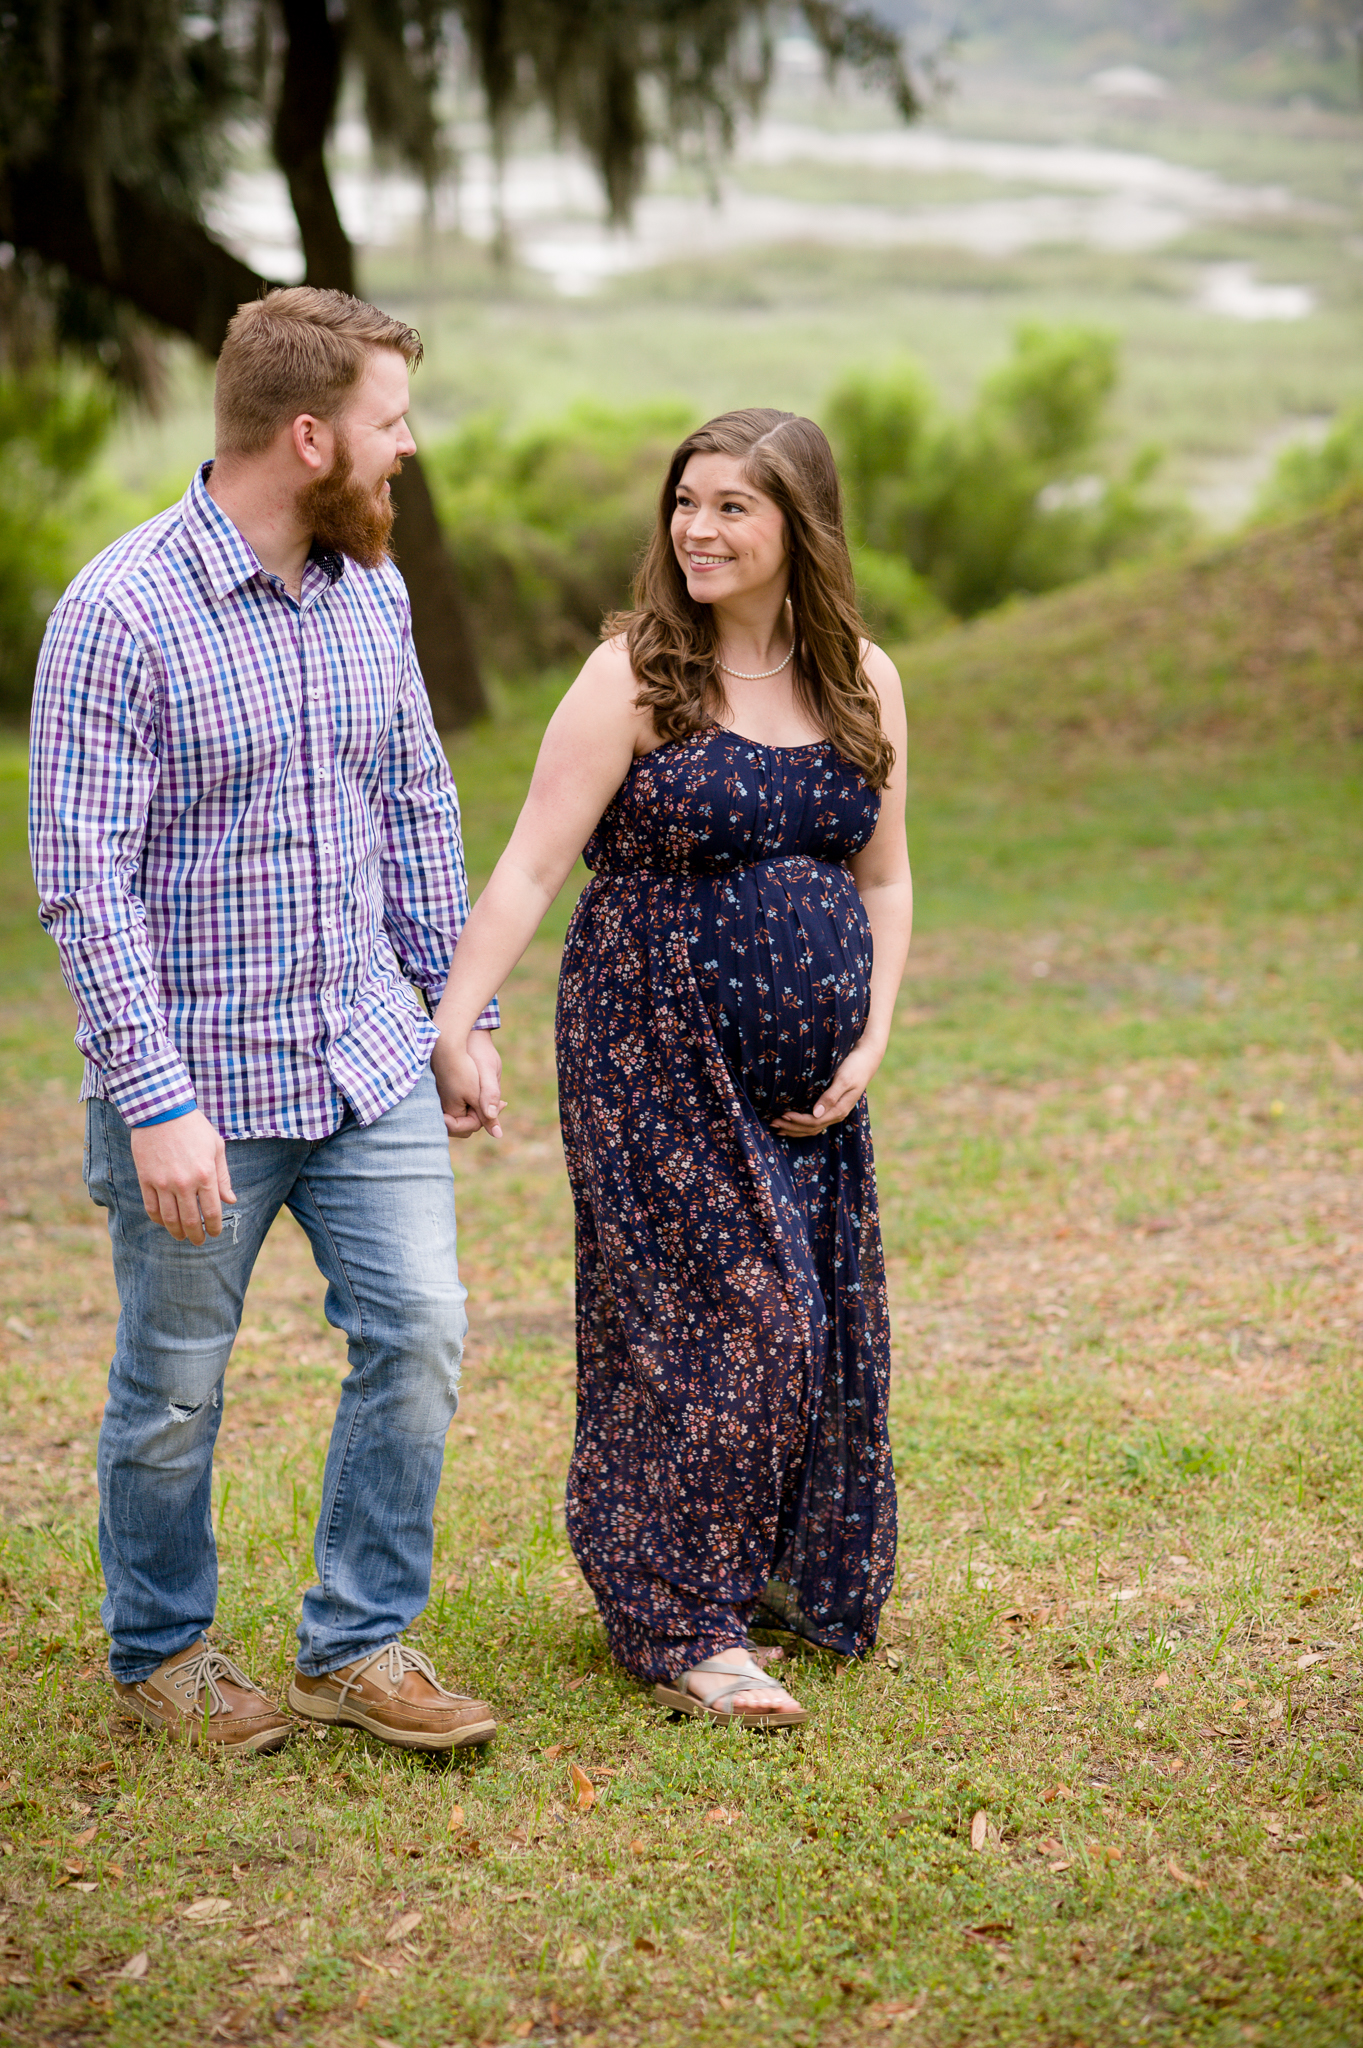 beaufort-south-carolina-maternity-portraits-2410.JPG